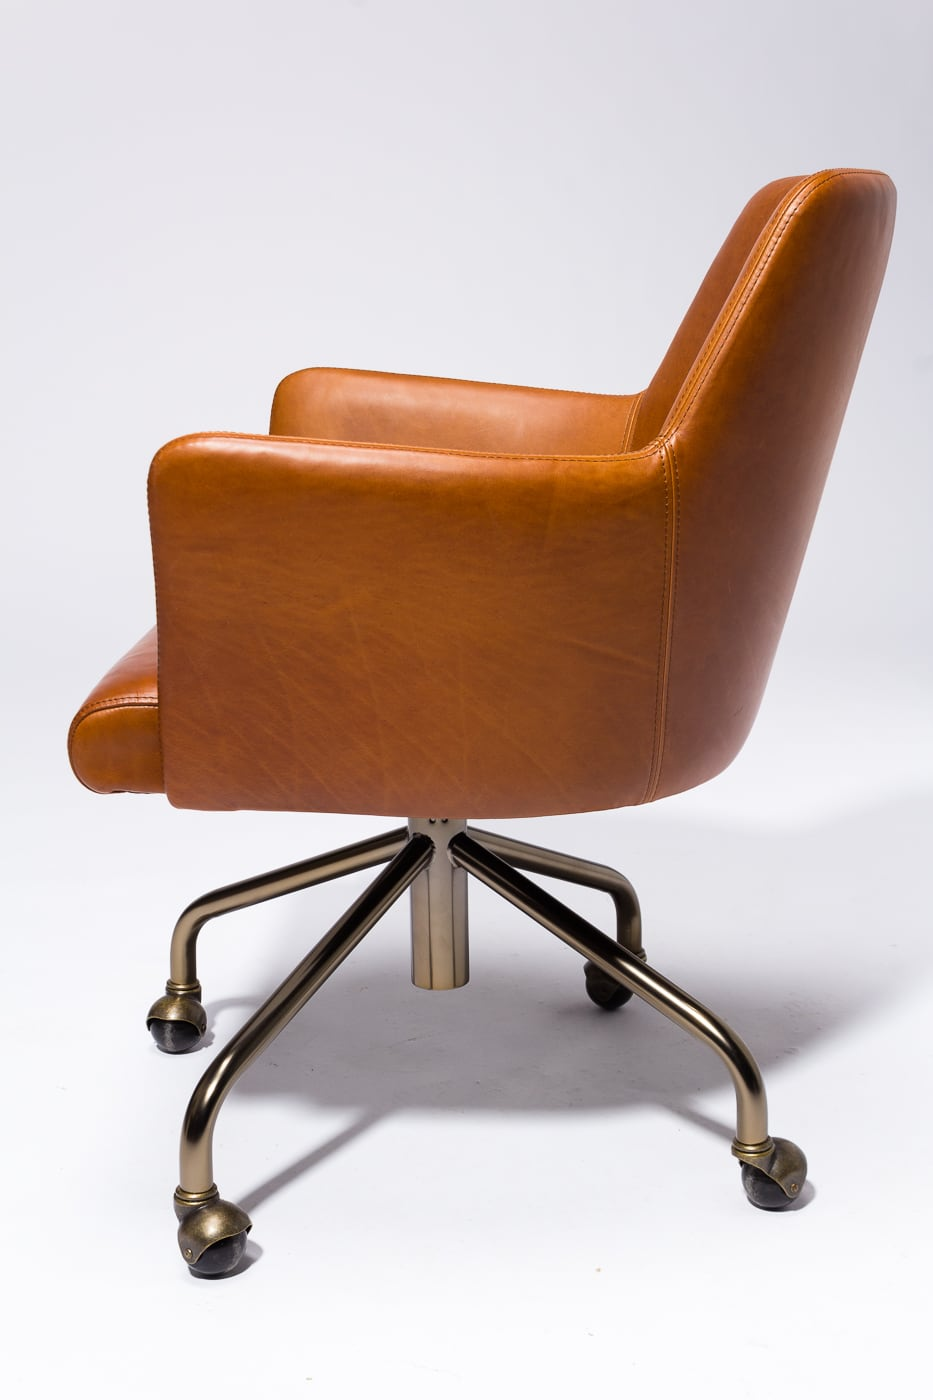 Magnificent Ch620 Byrd Leather Rolling Desk Chair Prop Rental Acme Short Links Chair Design For Home Short Linksinfo